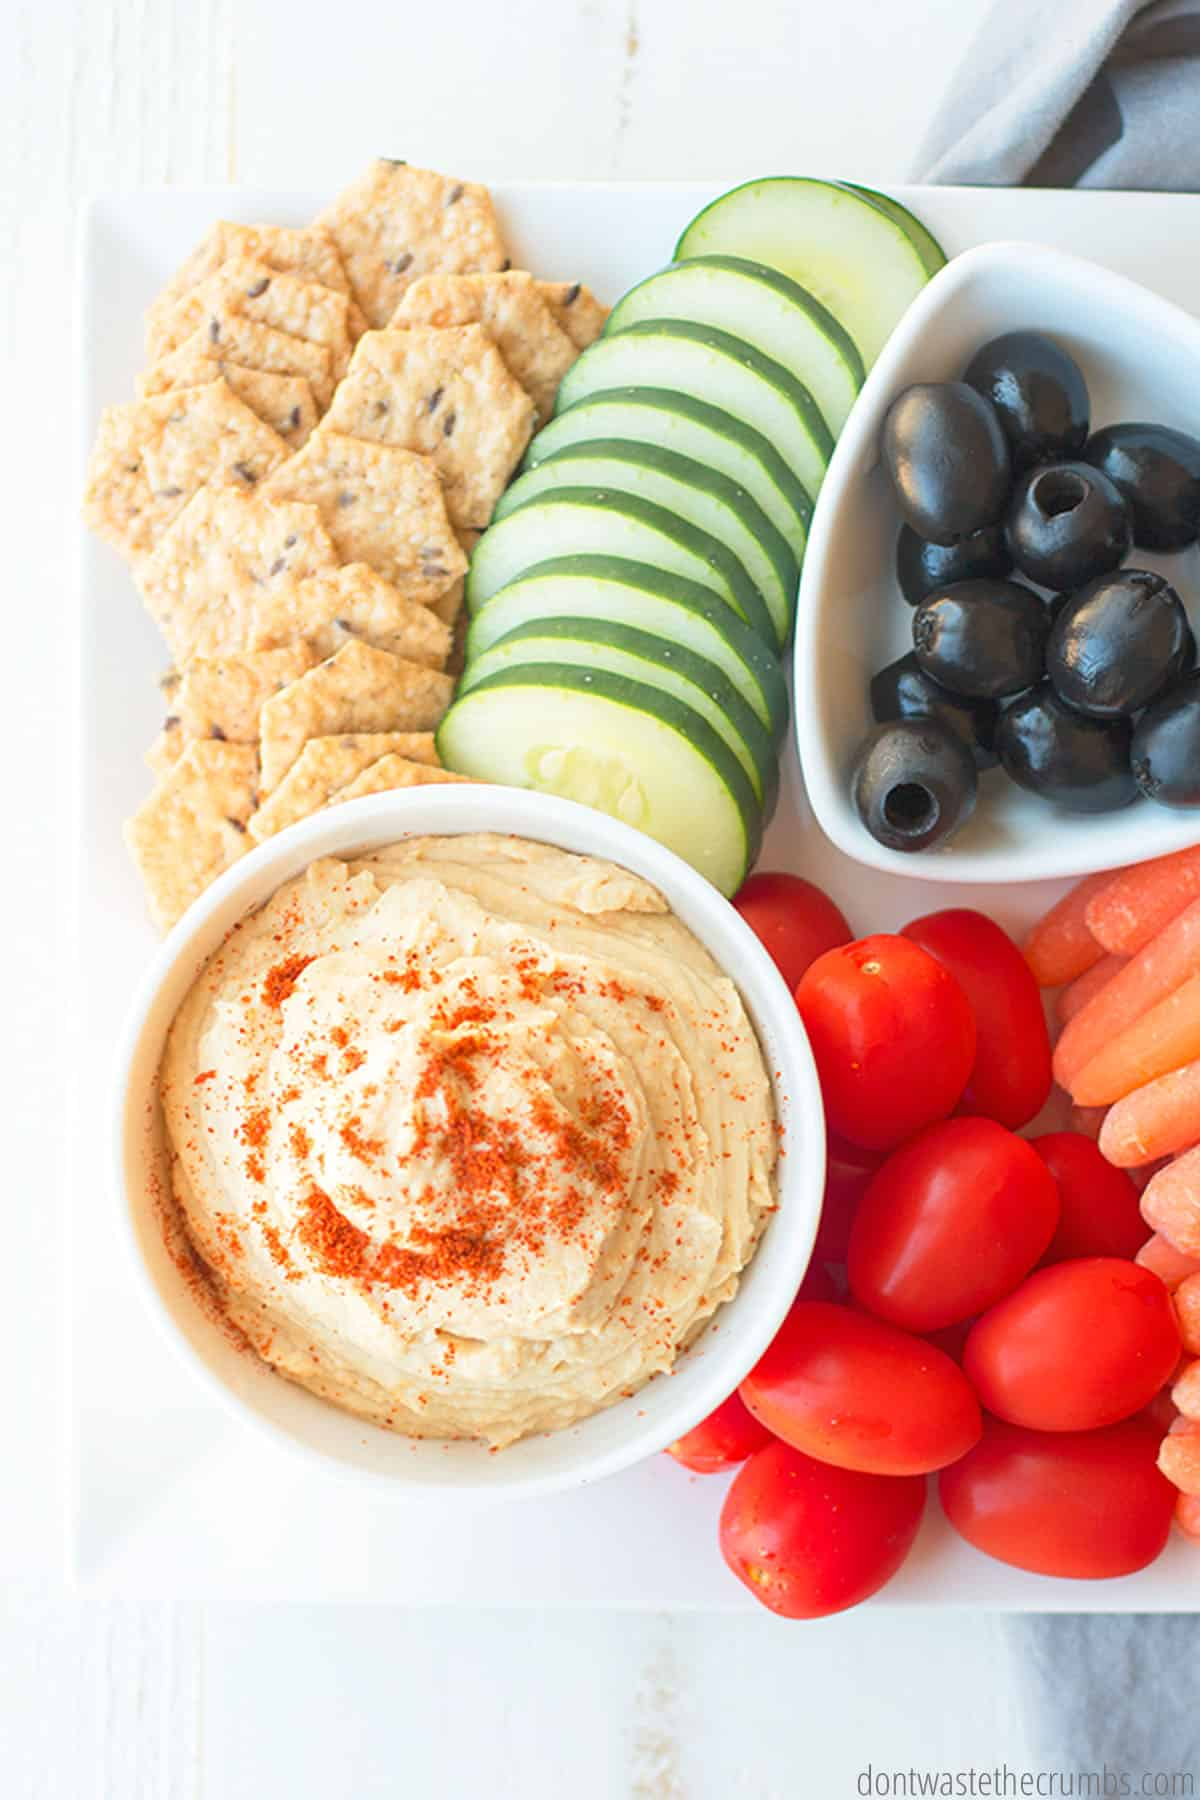 A small bowl of hummus finished with a sprinkle of cayenne pepper. Fresh tomatoes, carrots, cucumbers, olives and crackers are placed beside the dish for dipping.